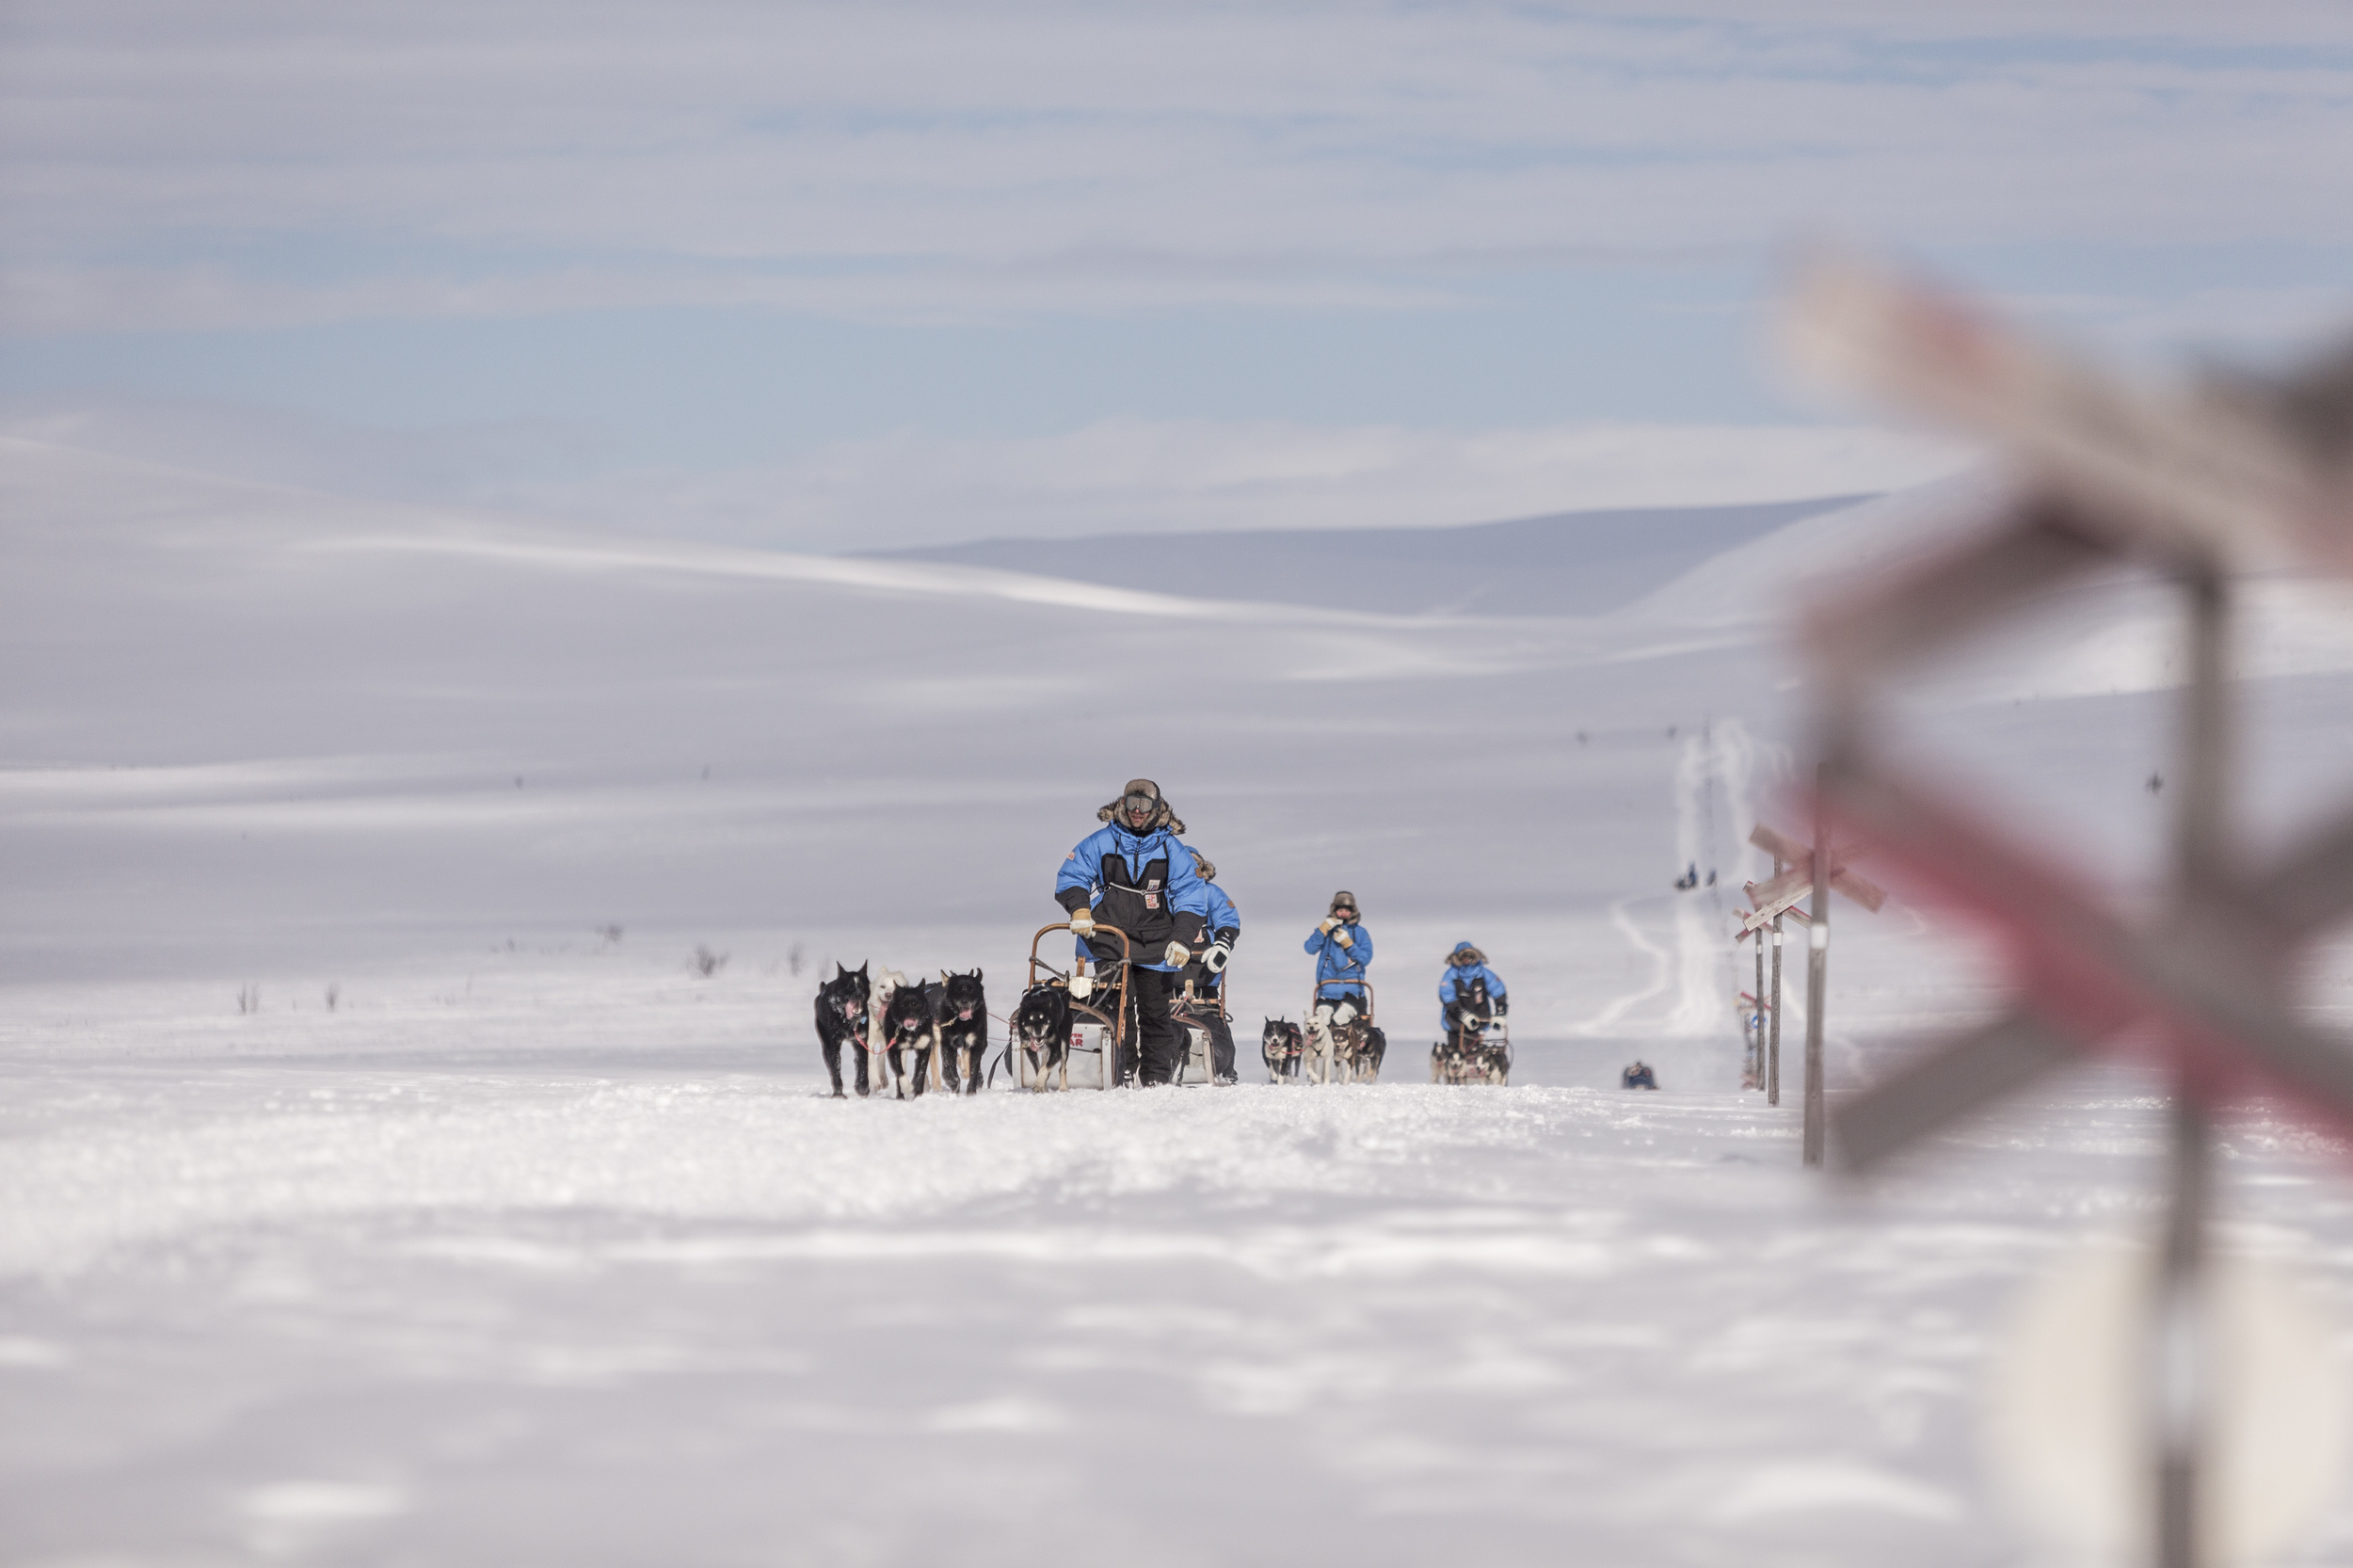 We cross the unmarked border from Norway into Sweden early on Day 3 of Fjällräven Polar. (Photo by Håkan Wike for Fjällräven International. All rights reserved.)